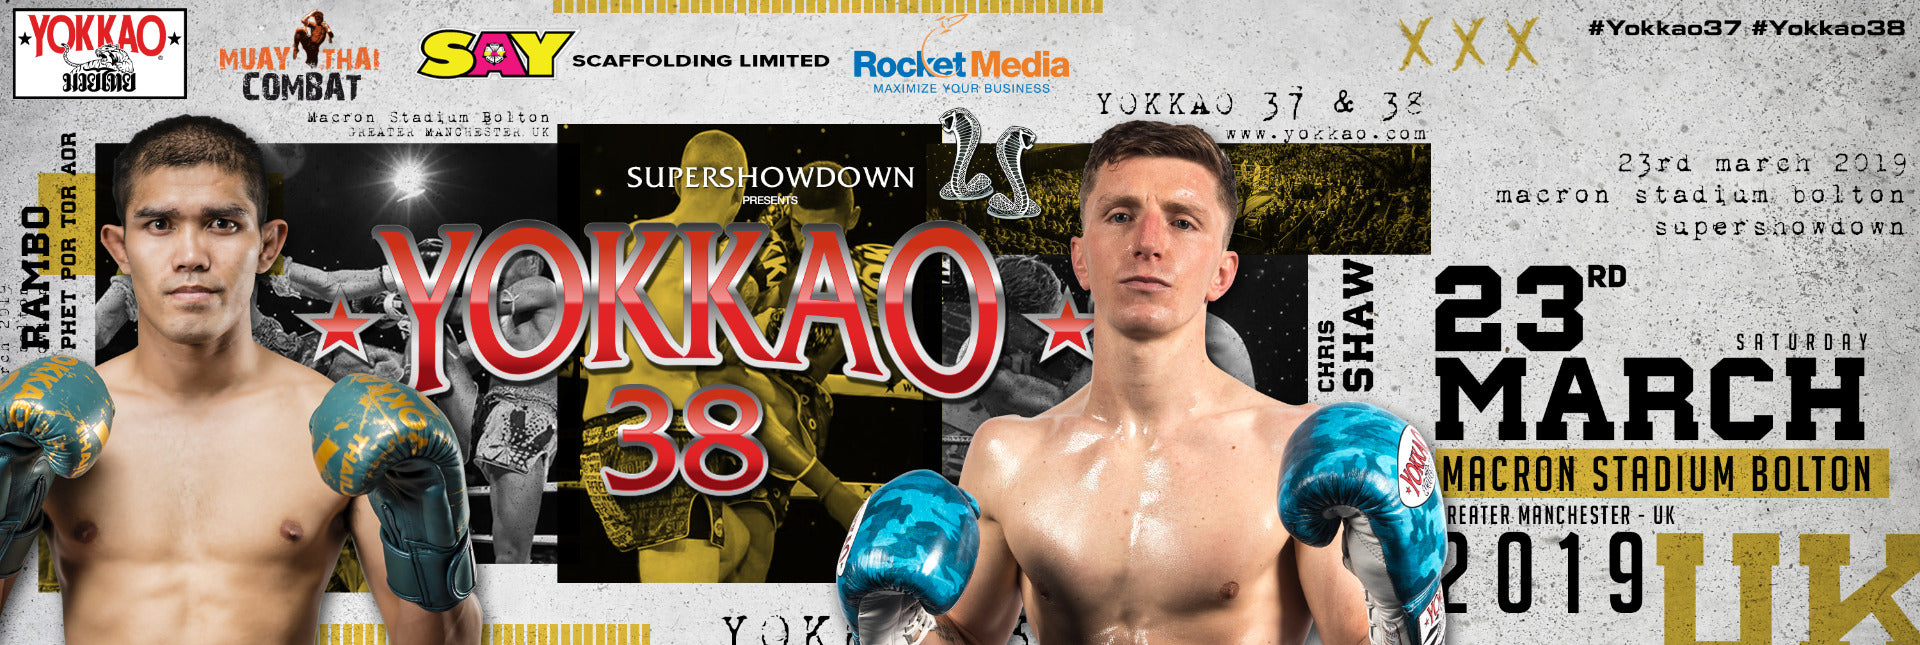 YOKKAO 38 Muay Thai Results